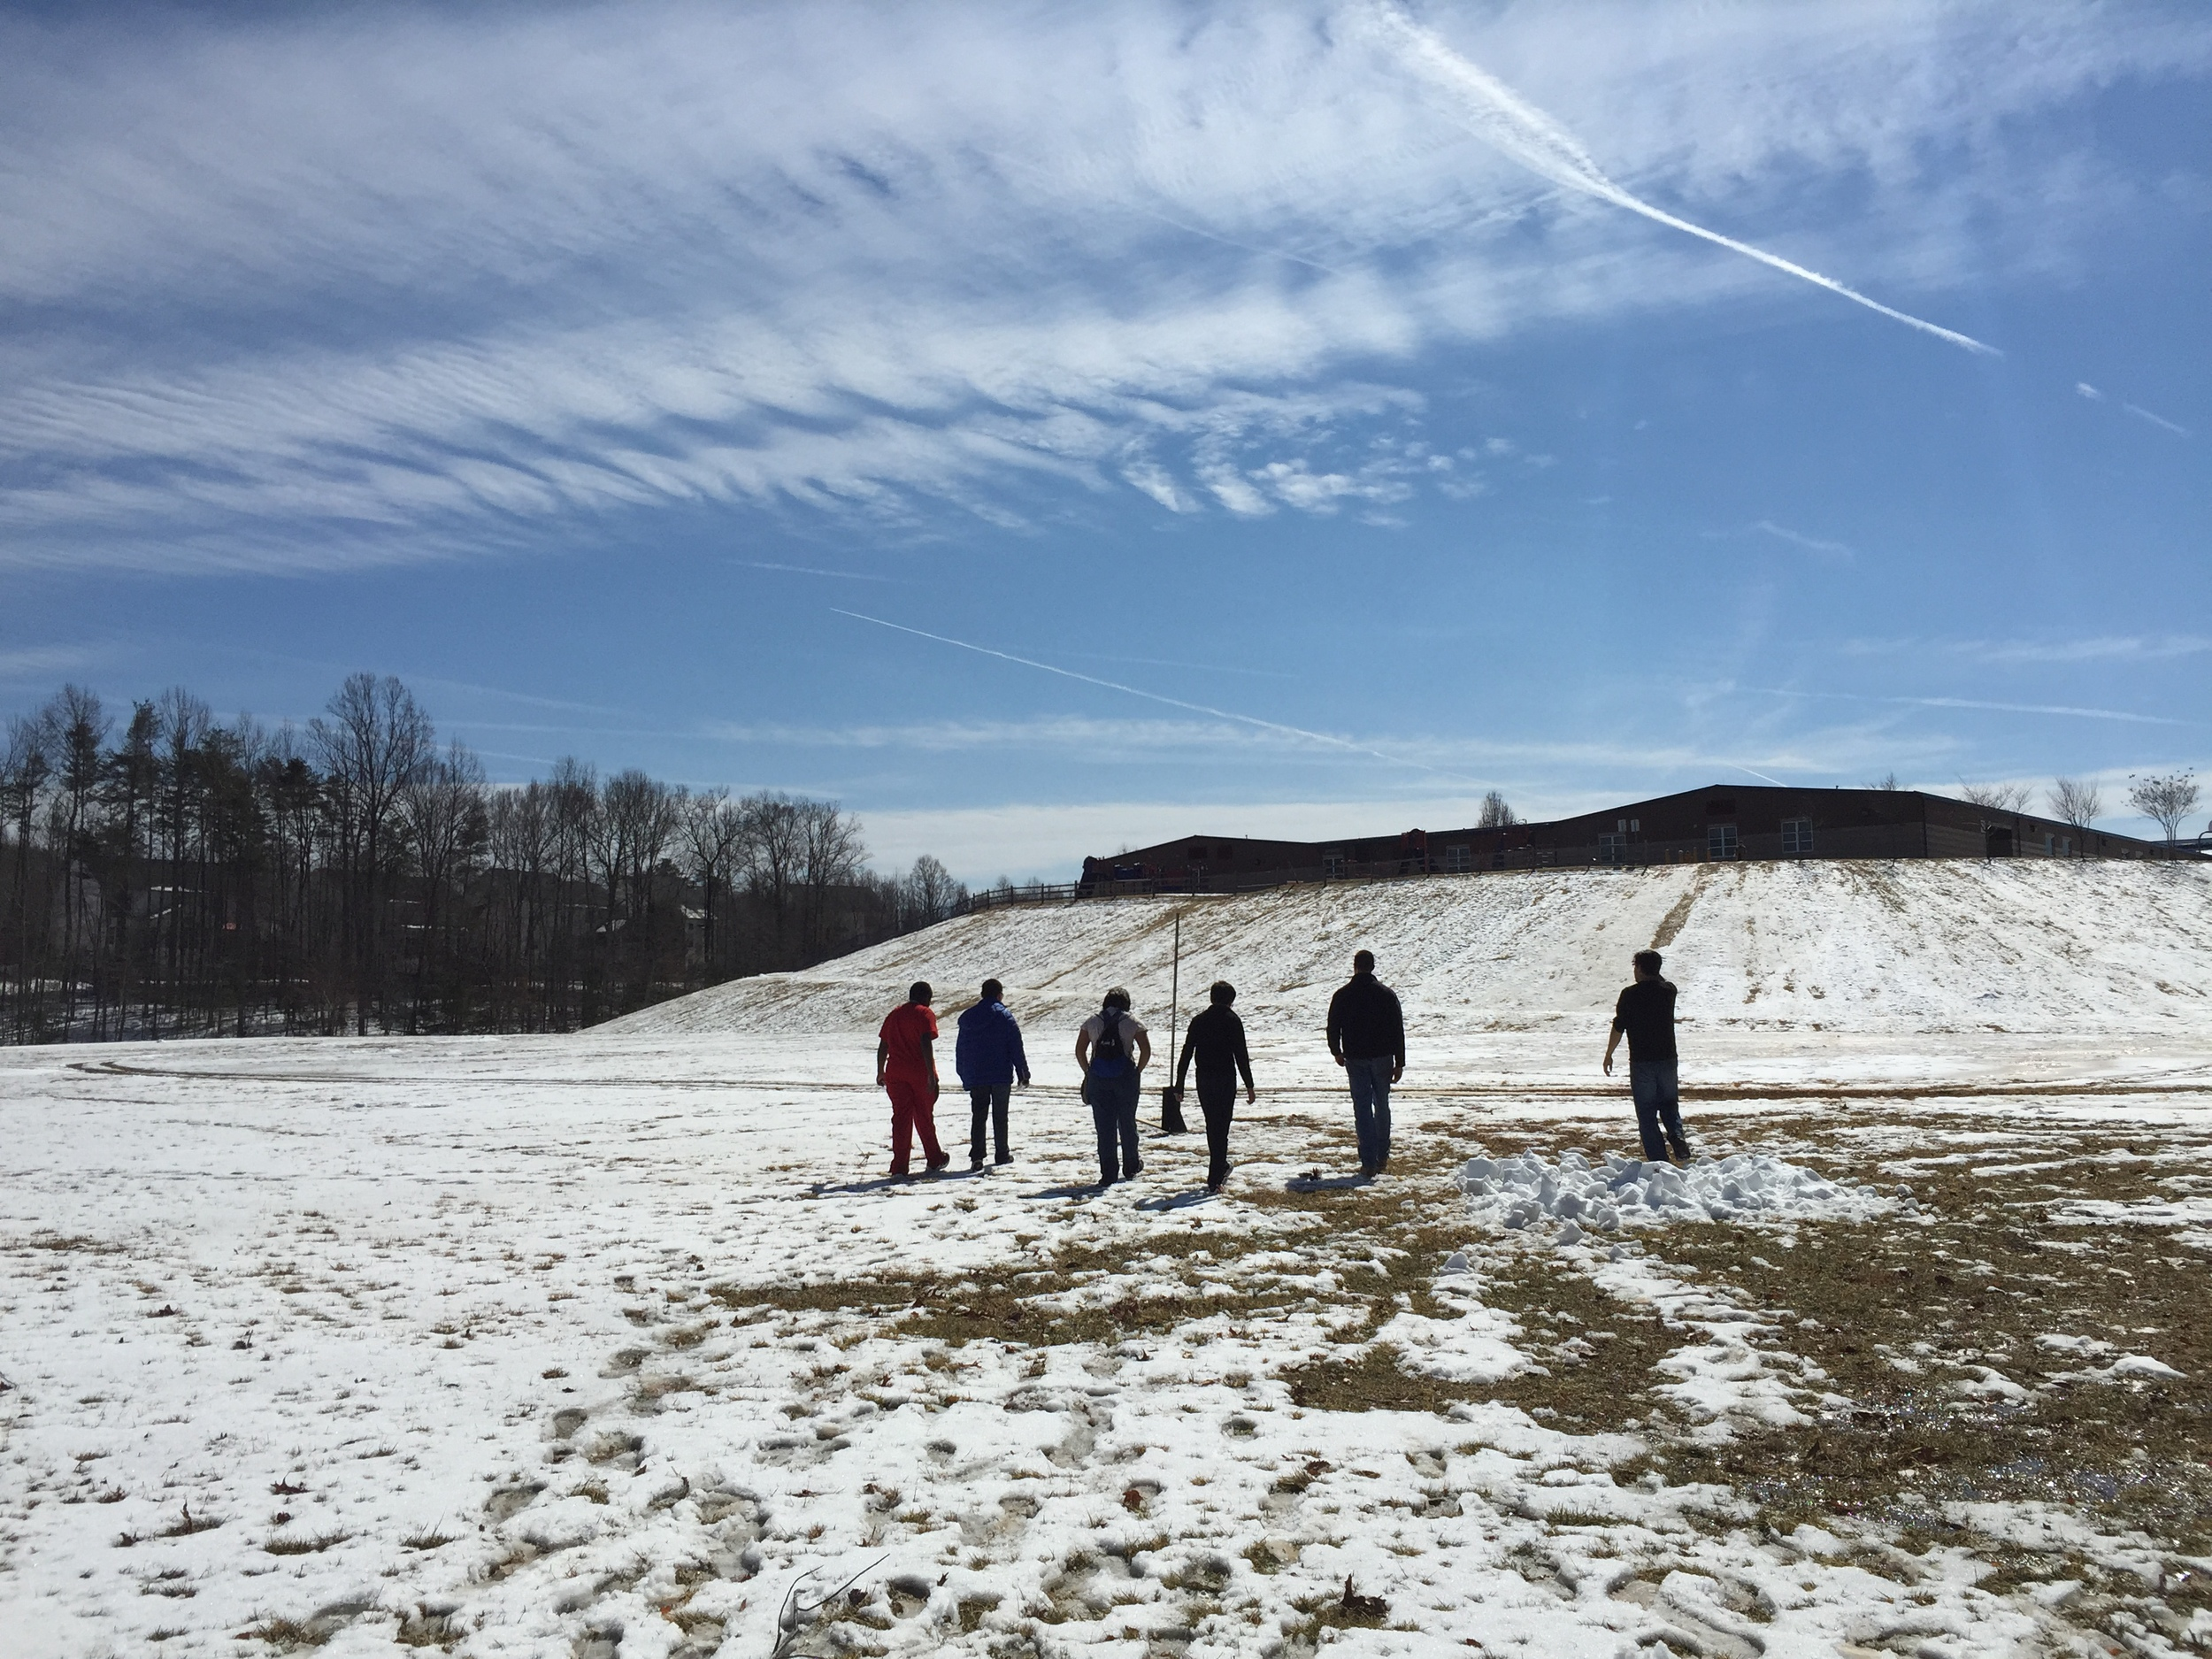 Students conduct test launches in Virginia on a snowy March day.